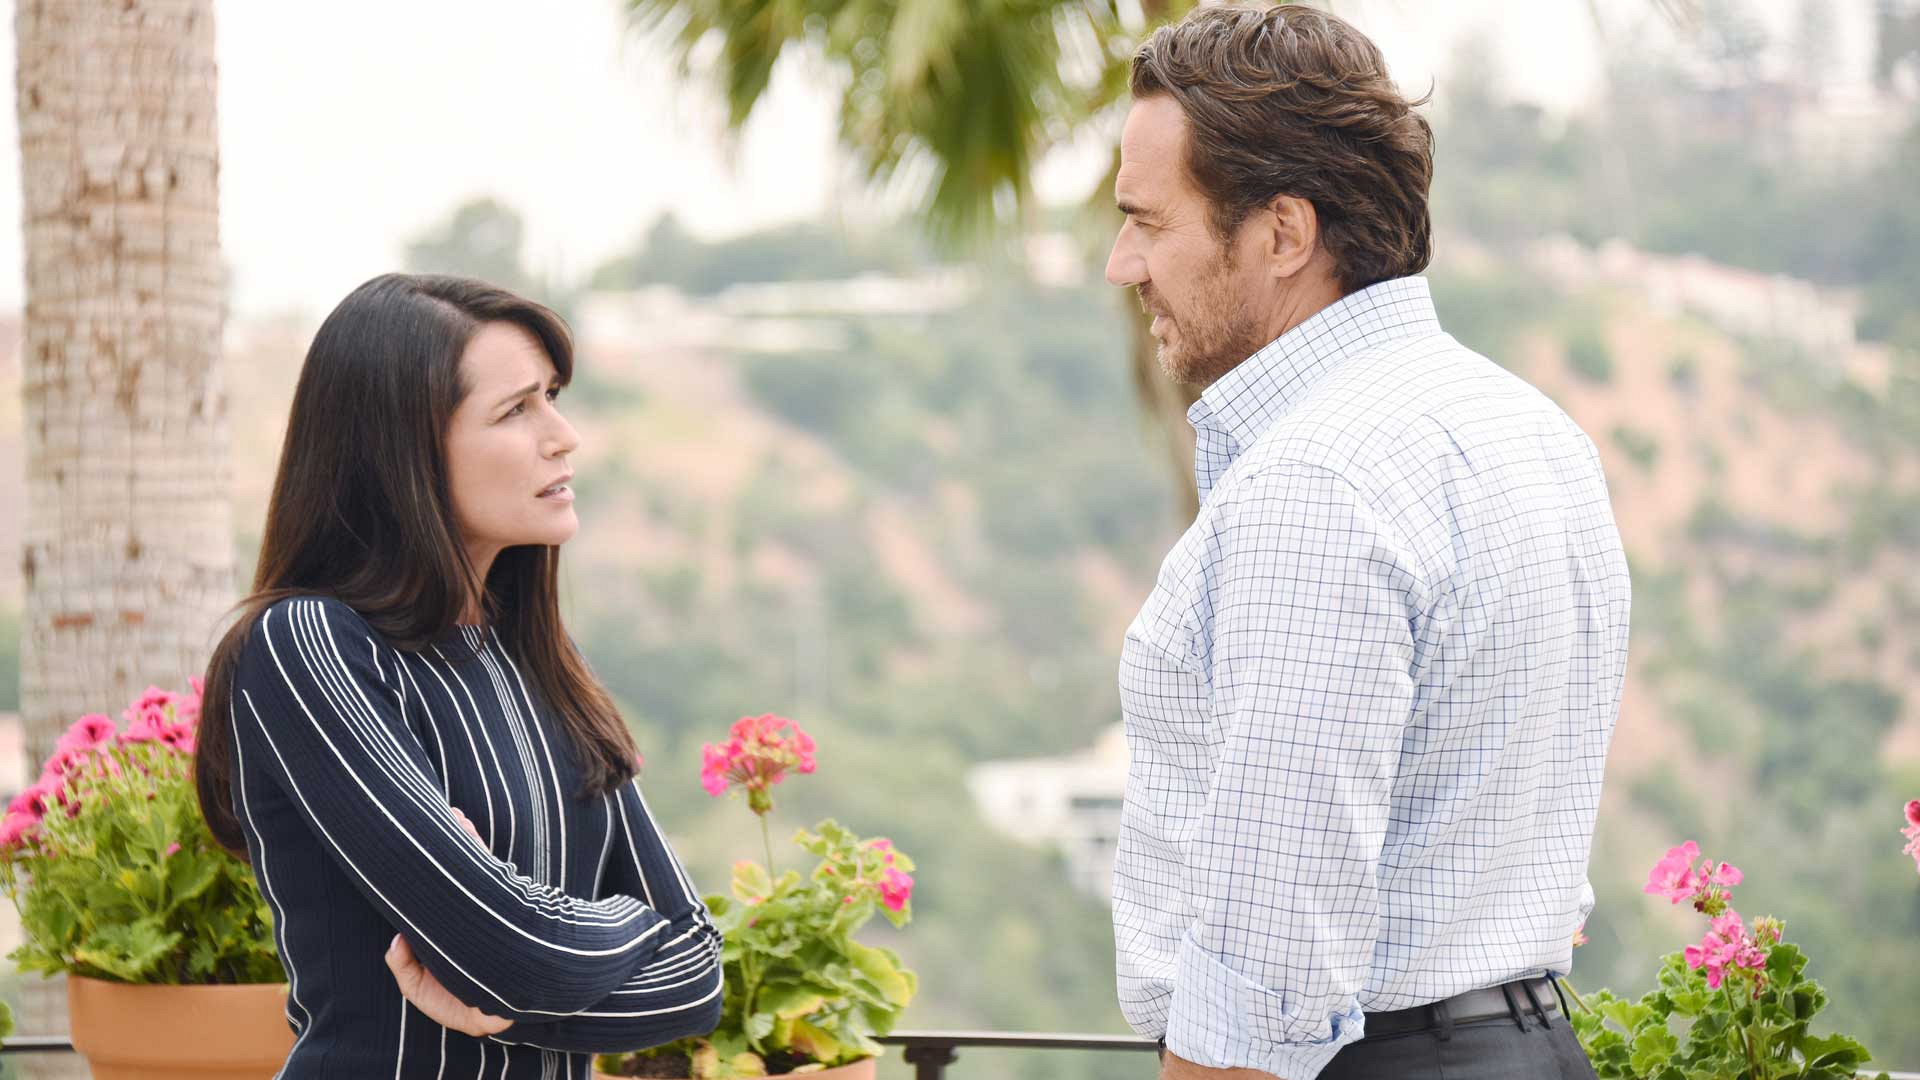 Quinn makes a startling confession to Ridge that significantly changes the dynamic of their relationship.